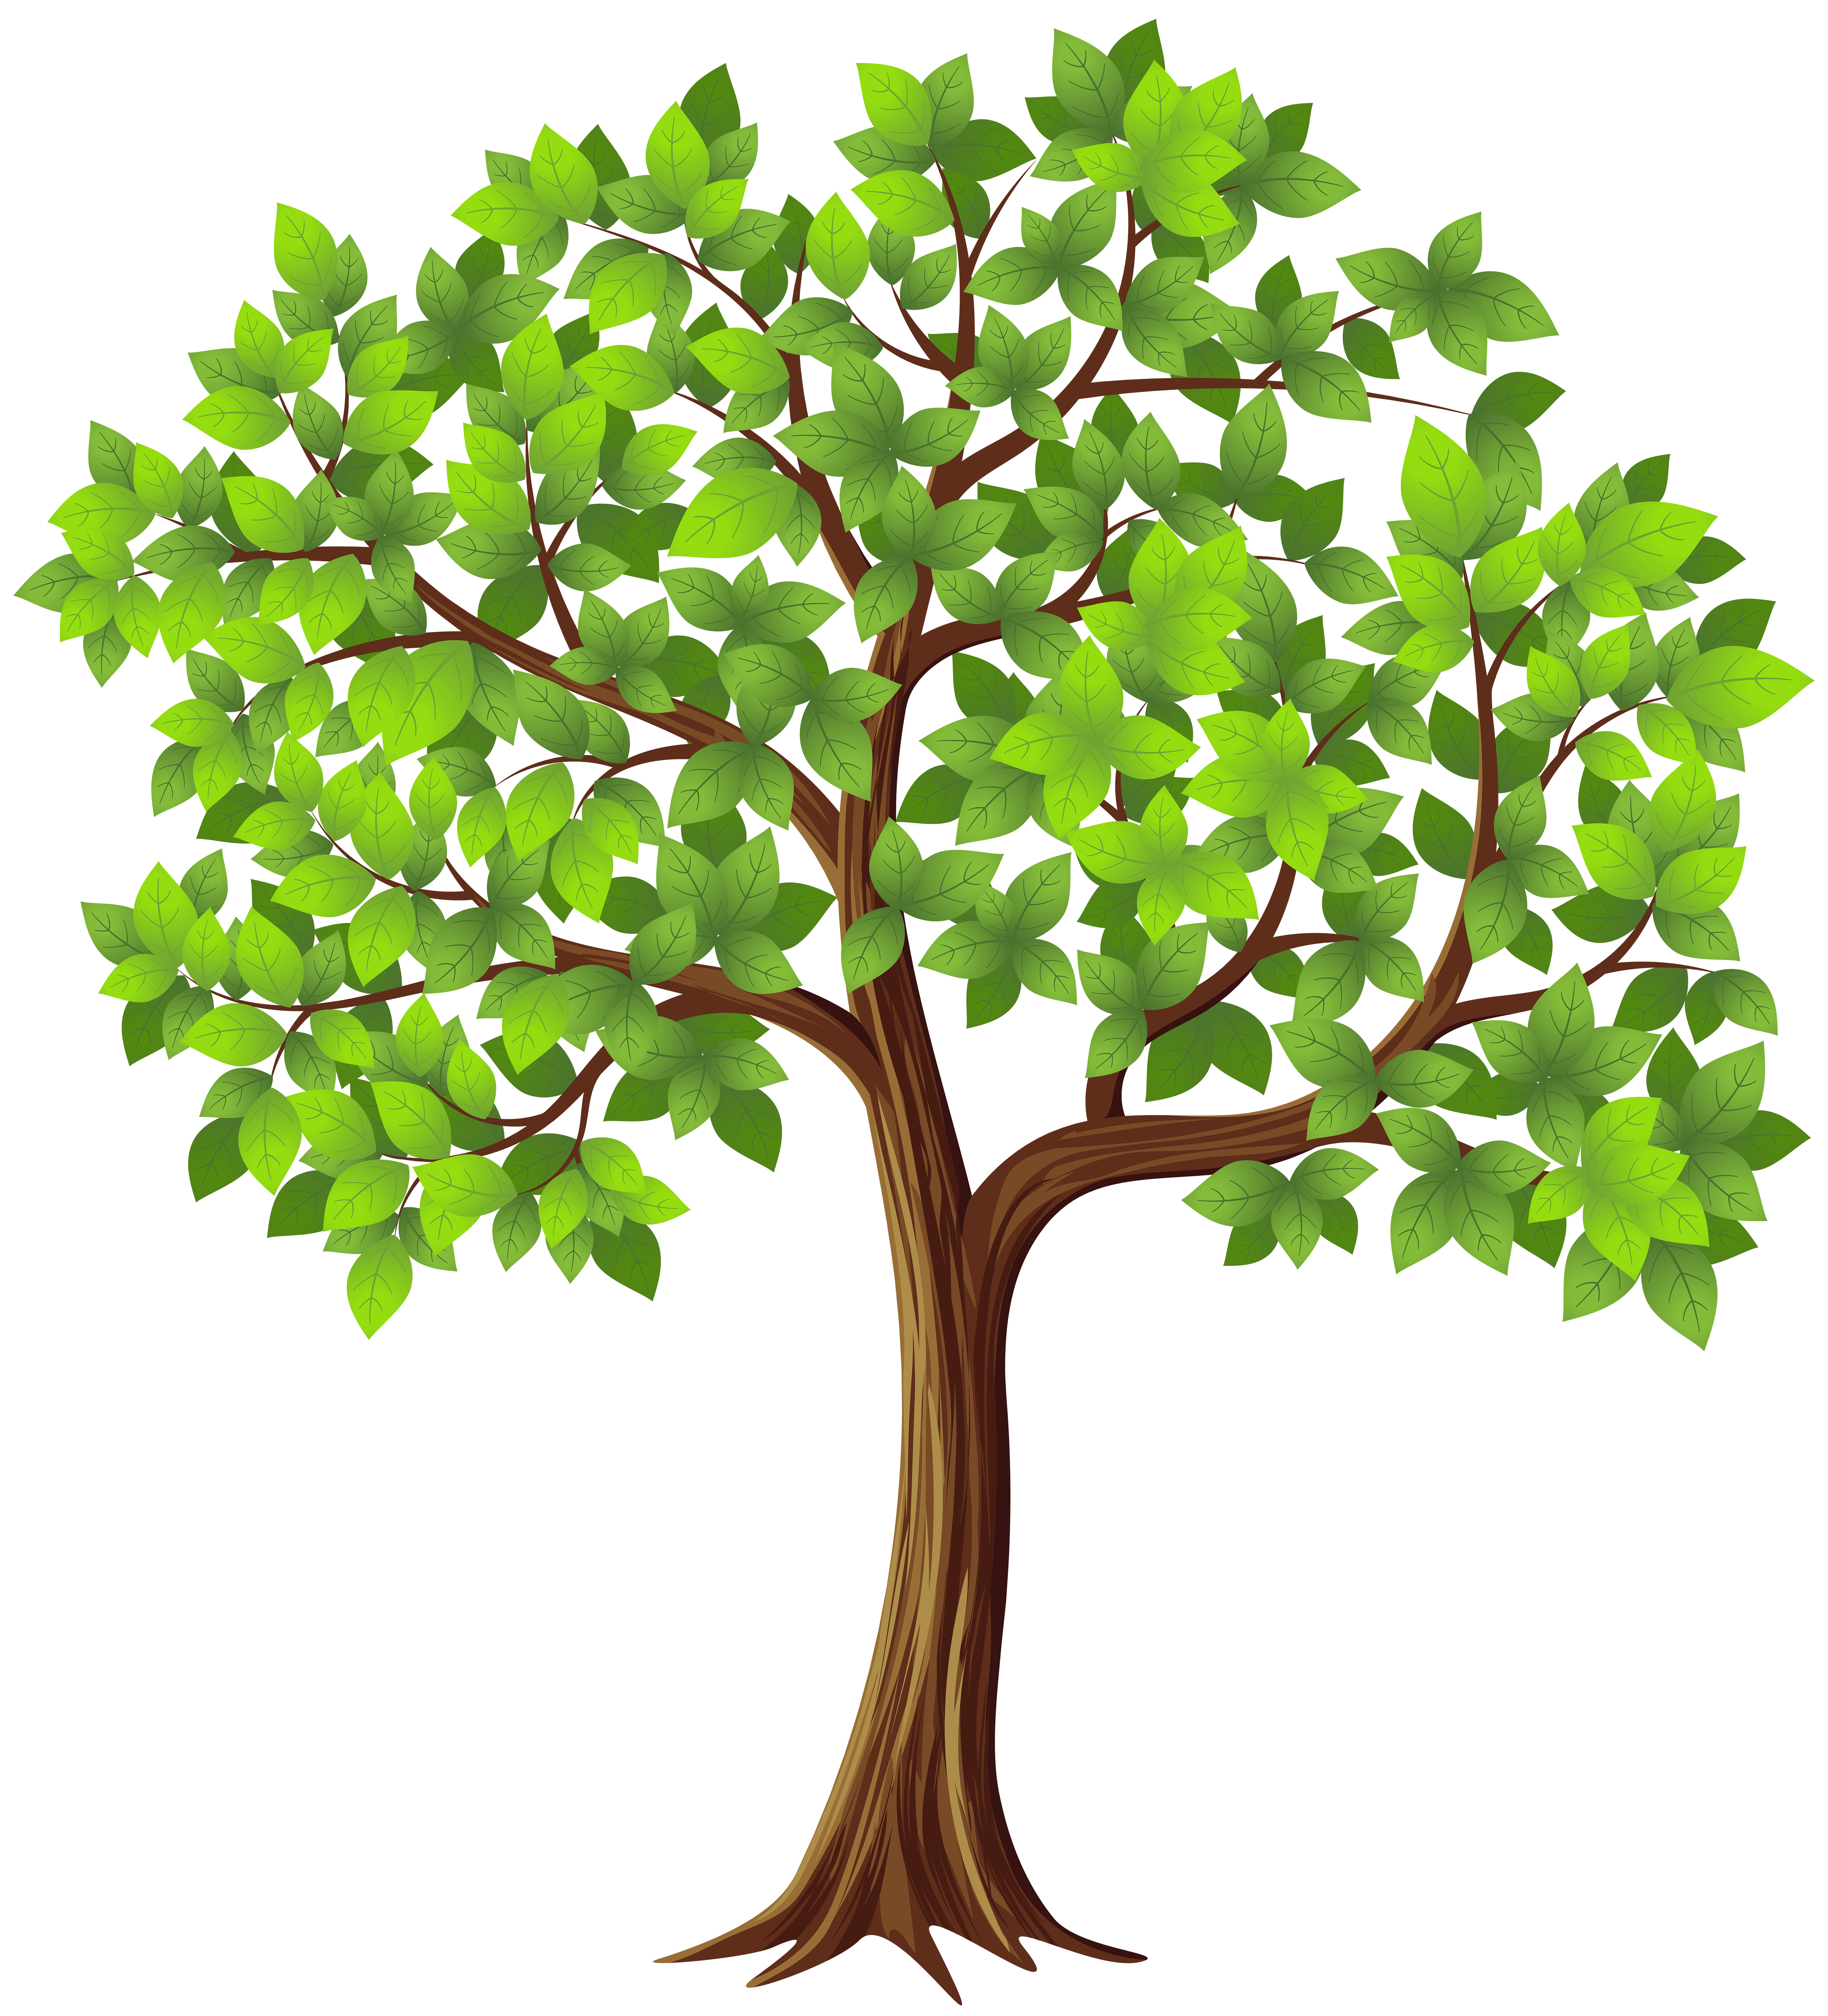 Tree Clipart PNG - 77194